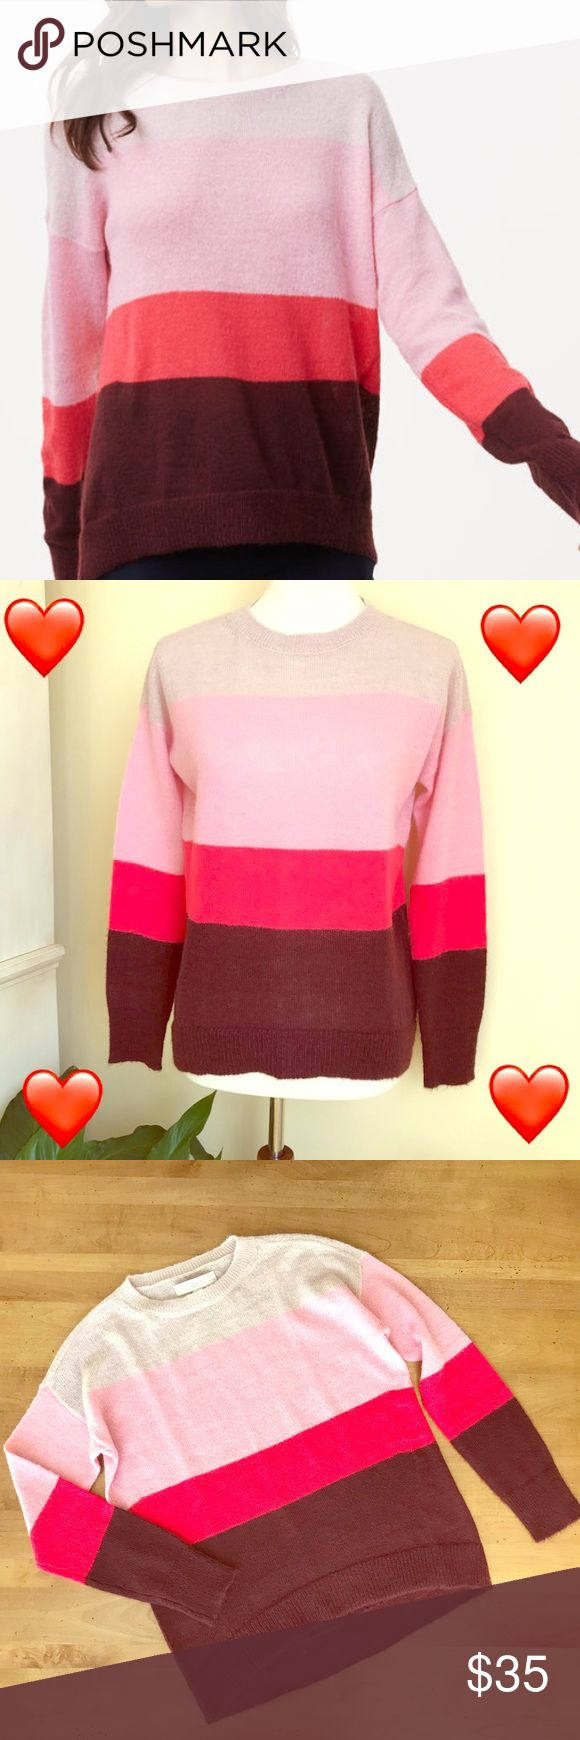 ❤️Anne Taylor LOFT Petite boyfriend sweater Anne Taylor LOFT striped boyfriend sweater. Super soft and casual! Perfect to wear on Valentine's Day! ❤️❤️❤️NWT. LOFT Sweaters Crew & Scoop Necks